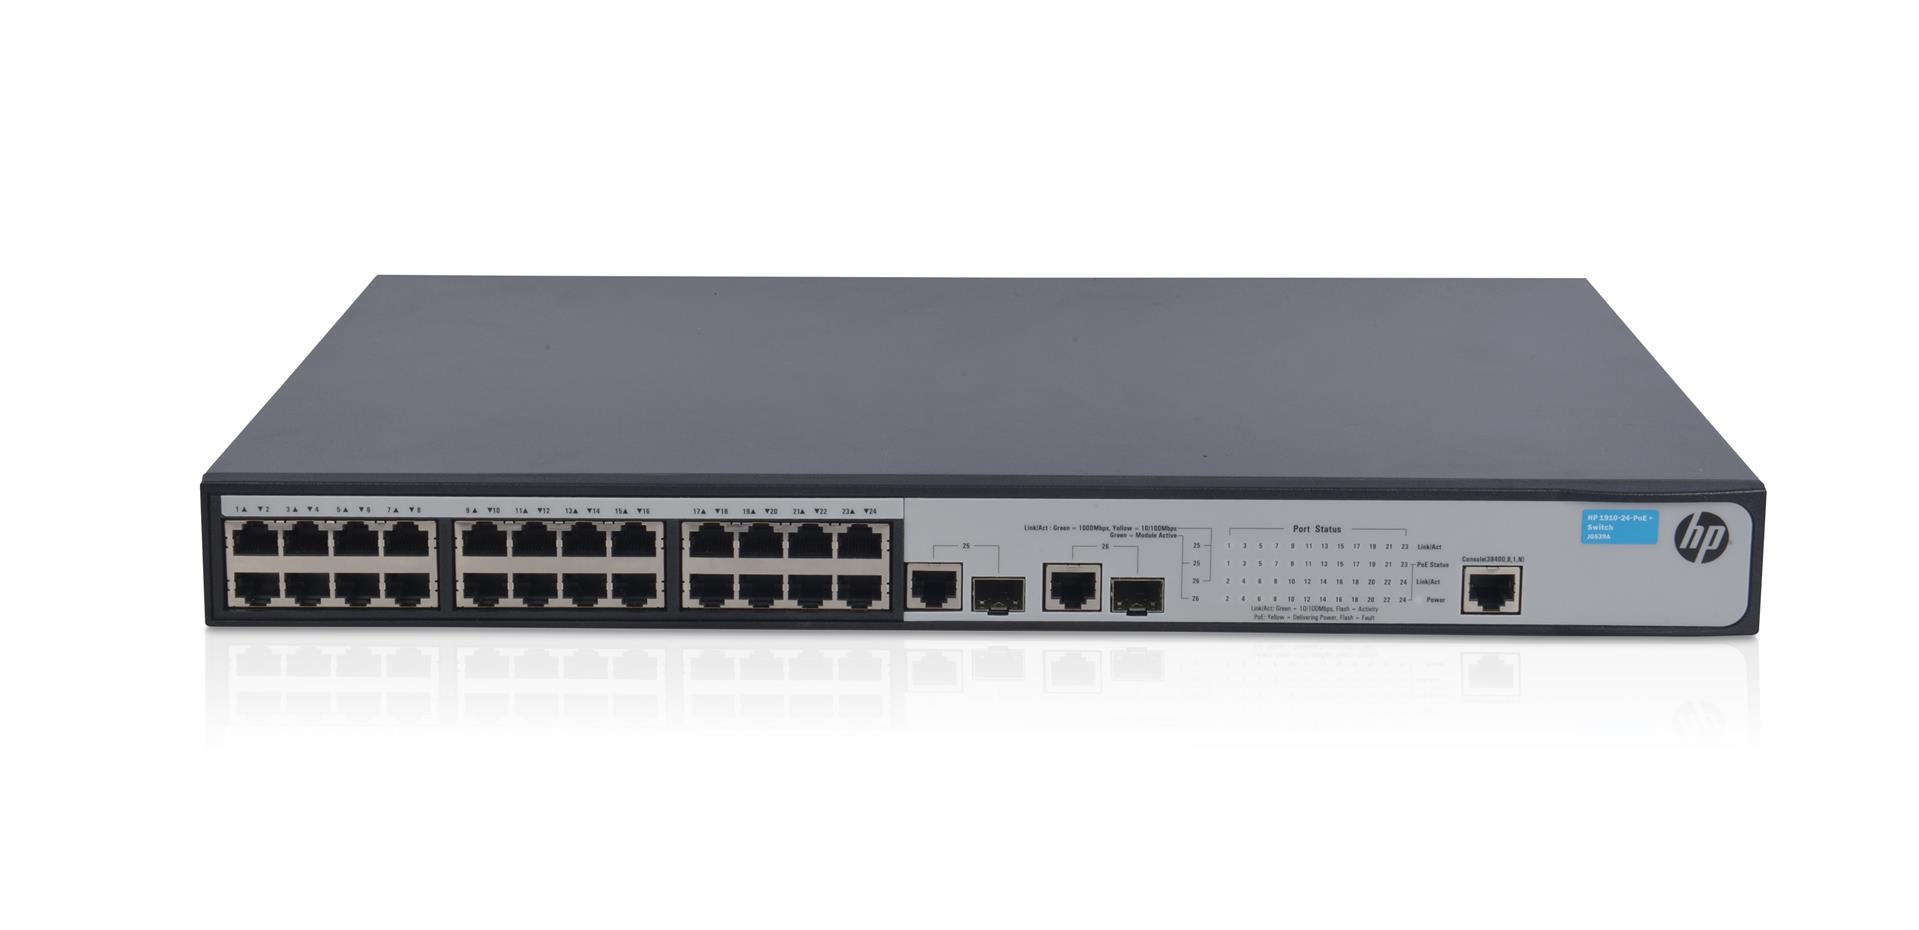 HPE 1910 24 PoE+ Switch